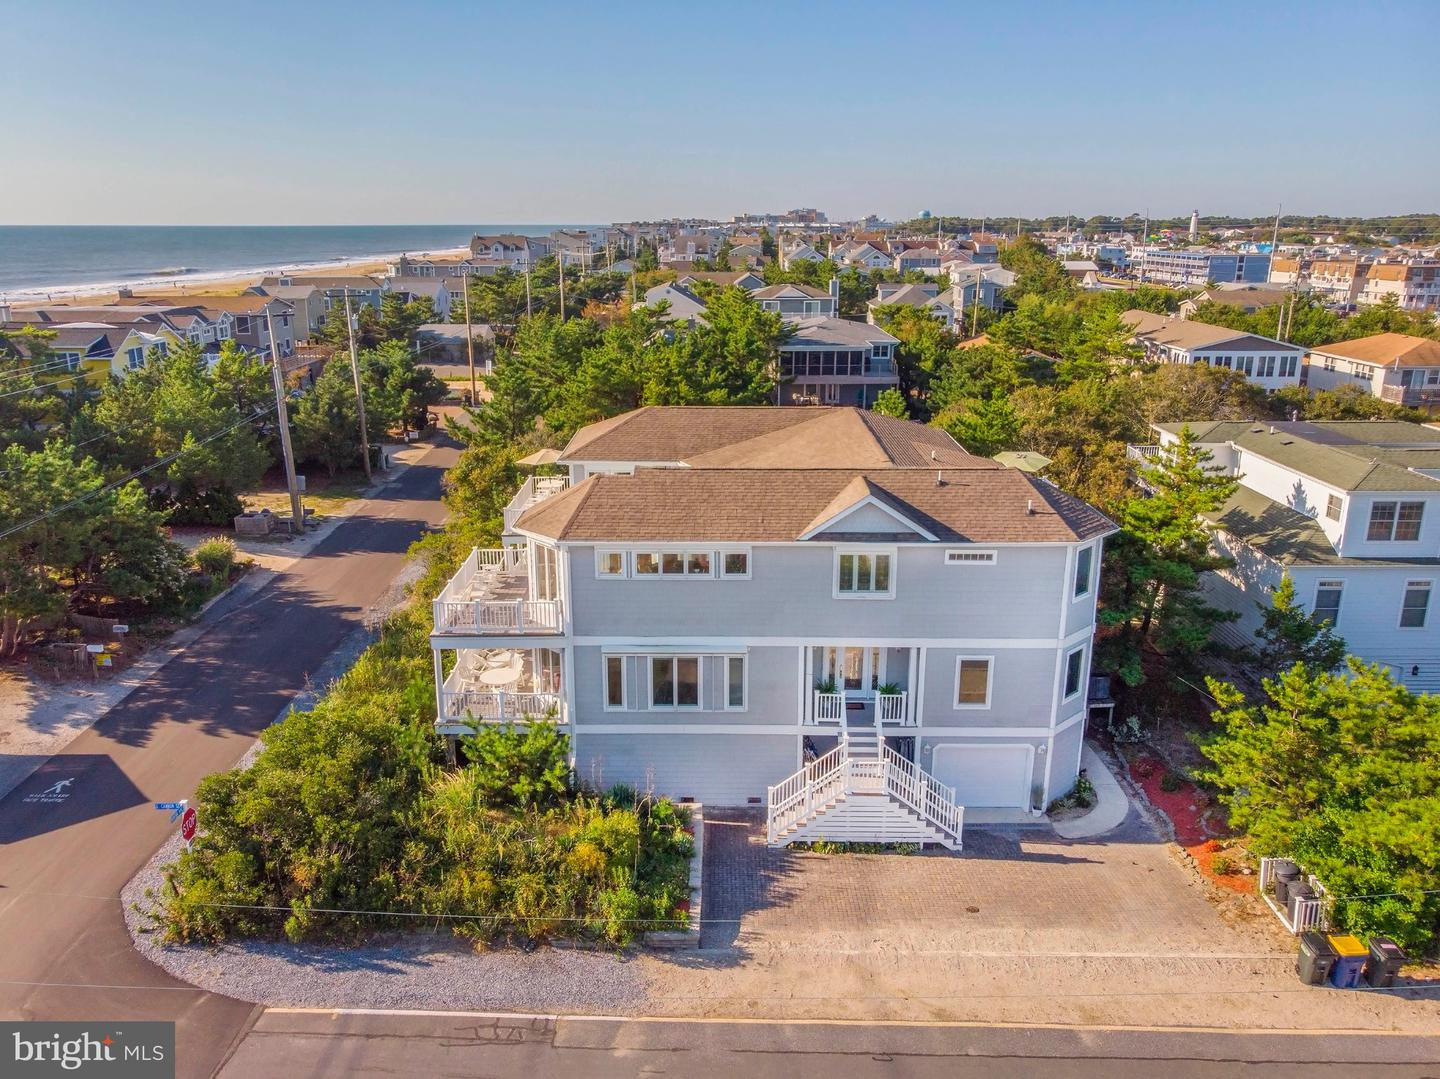 DESU147280-302007867634-2019-08-31-13-42-10 810 Bunting Ave | Fenwick Island, DE Real Estate For Sale | MLS# Desu147280  - Jack Lingo REALTOR